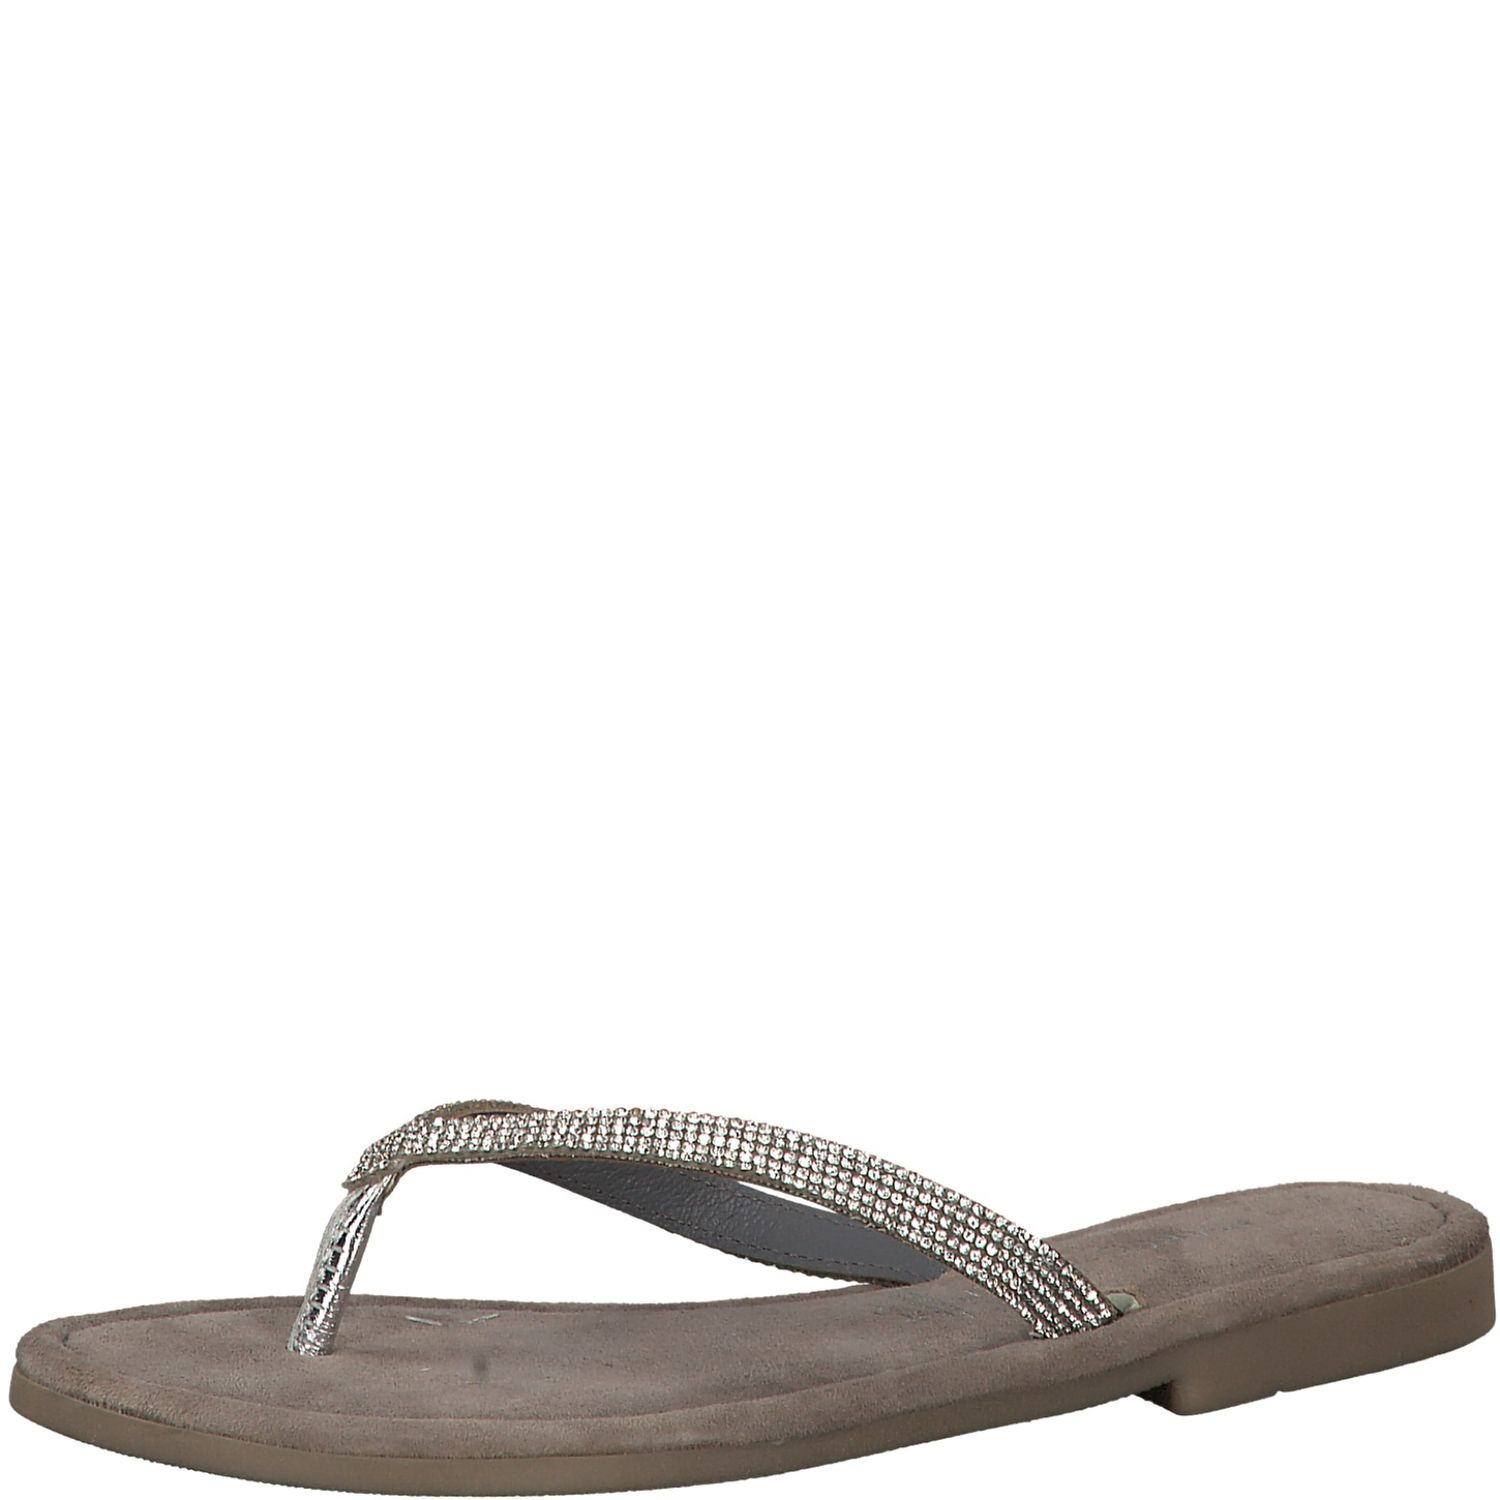 Details about Marco Tozzi Ladies 2 27113 22 T Clips Sandals Flip Flops High Heeled Silver